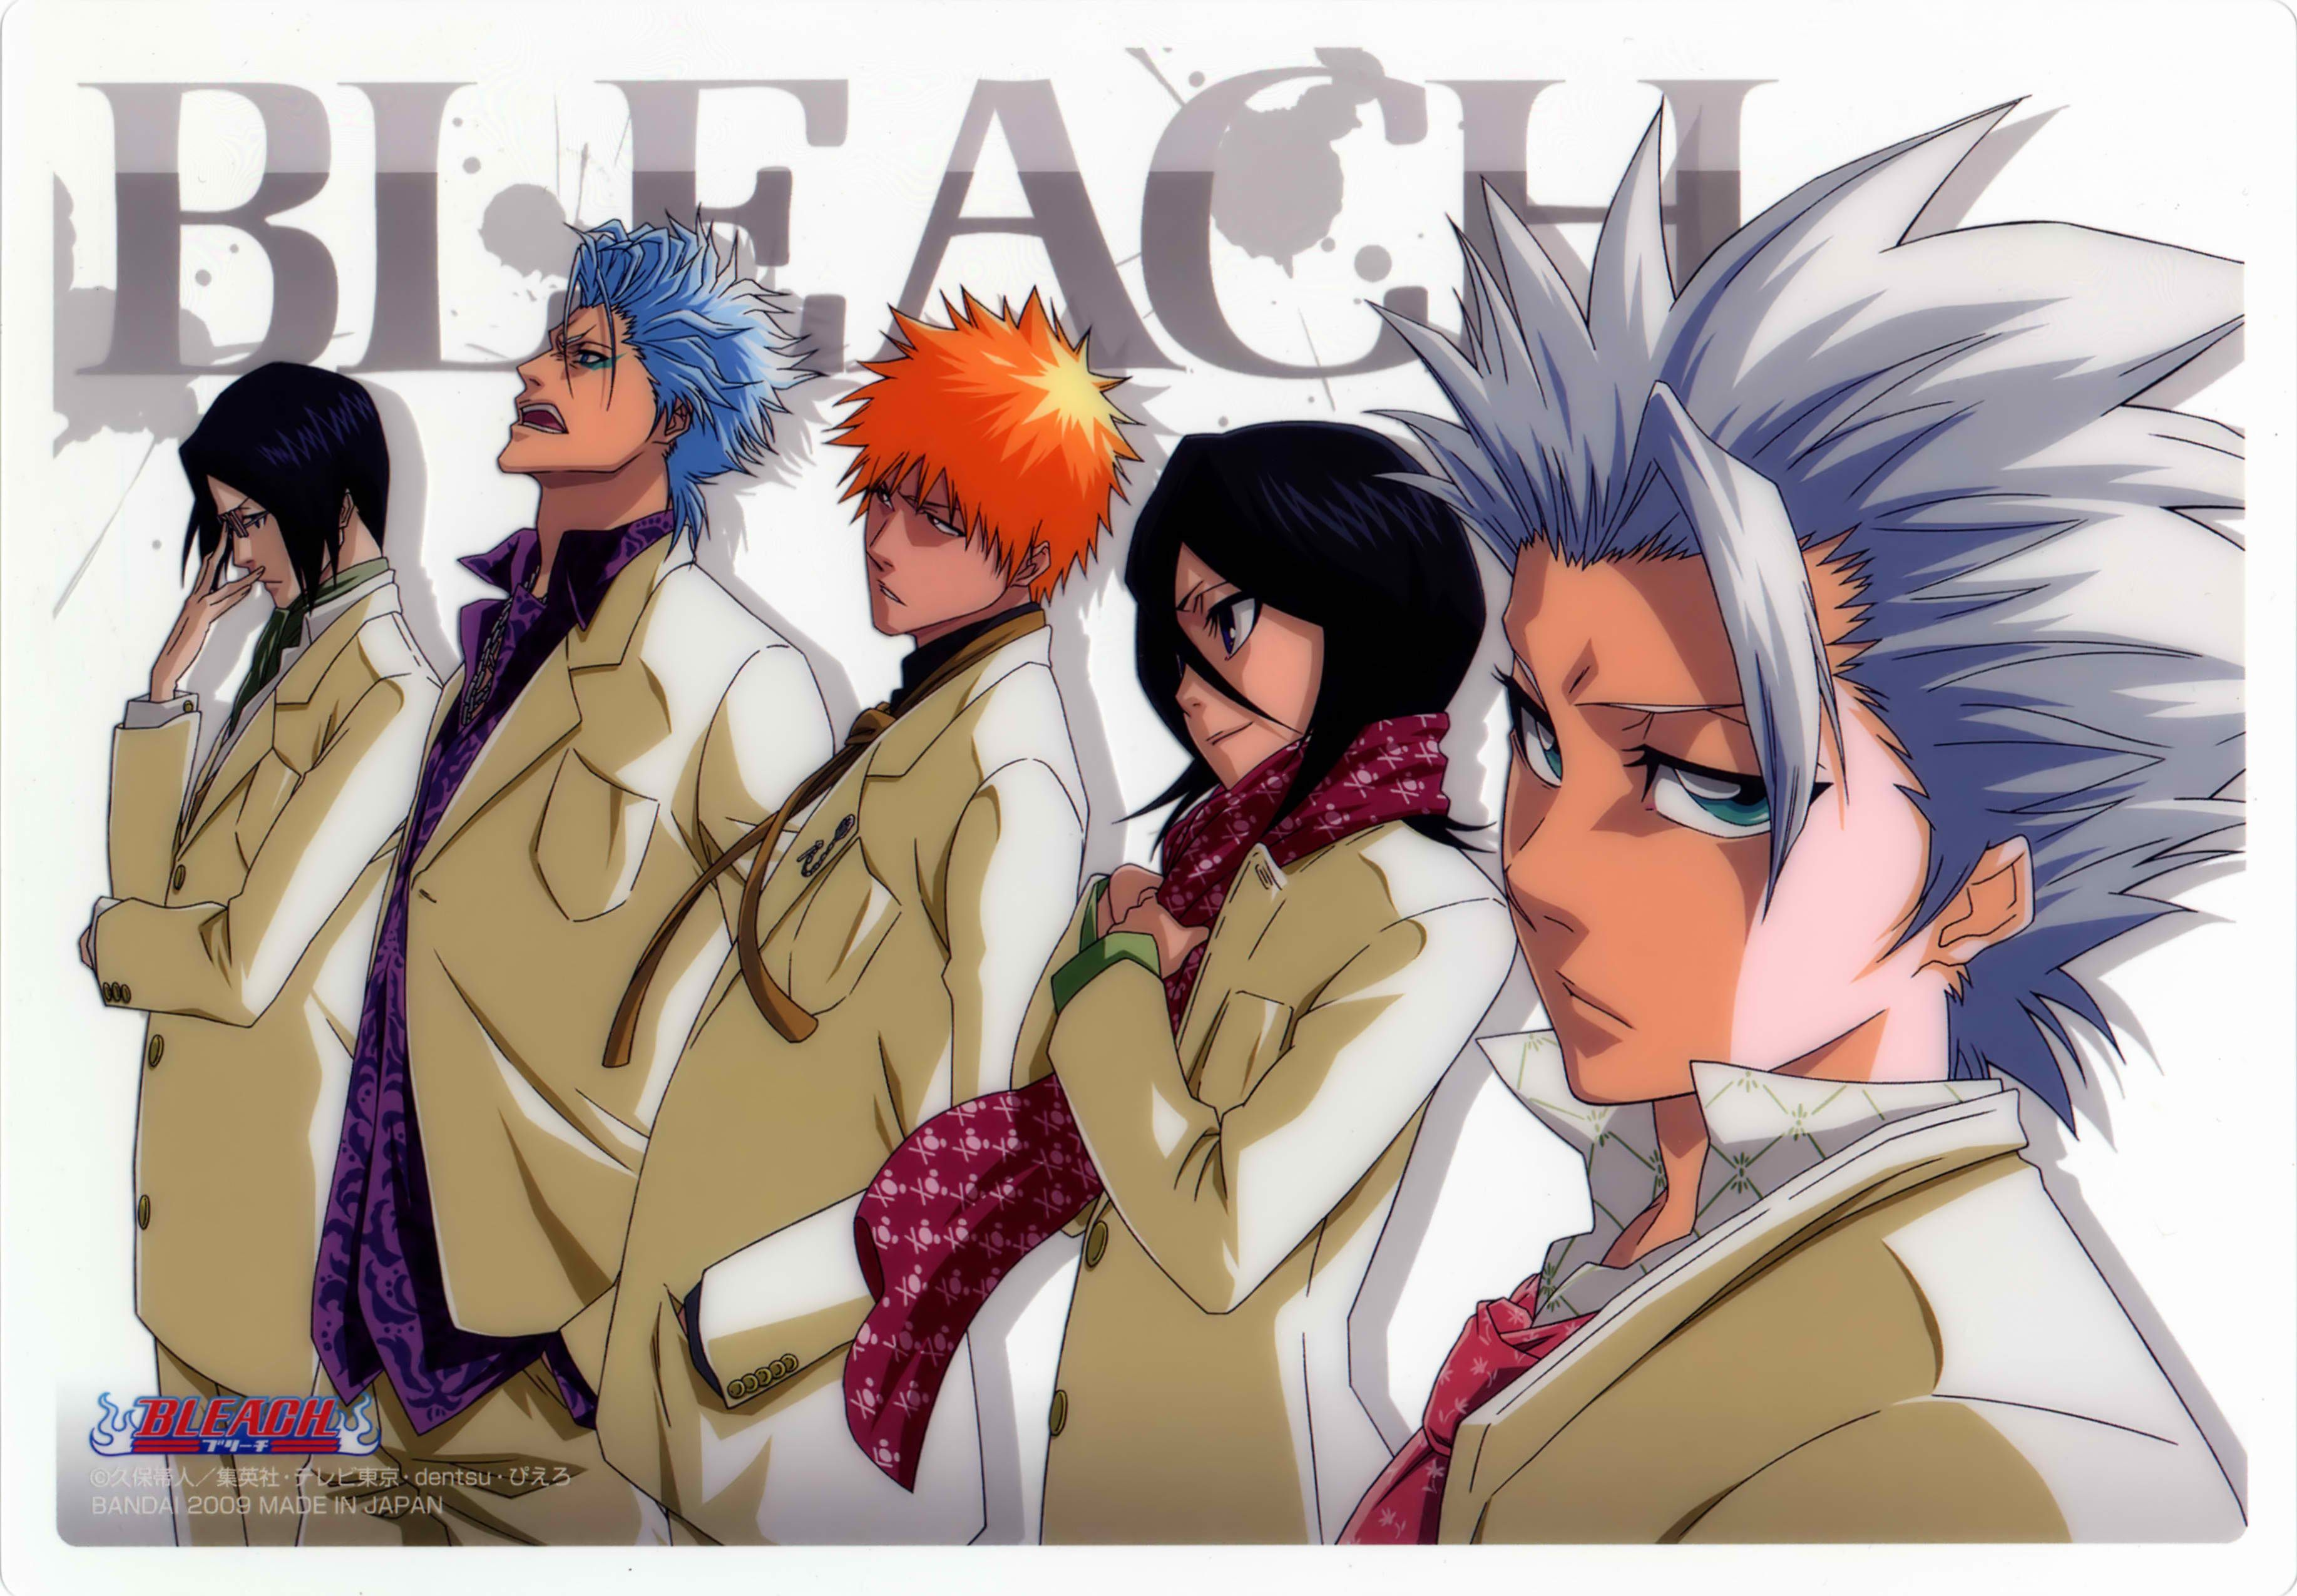 I think this was a popularity poll lol at Ulquiorra and grimmjow for being in the top five even though they're in like 10 episodes out of 366